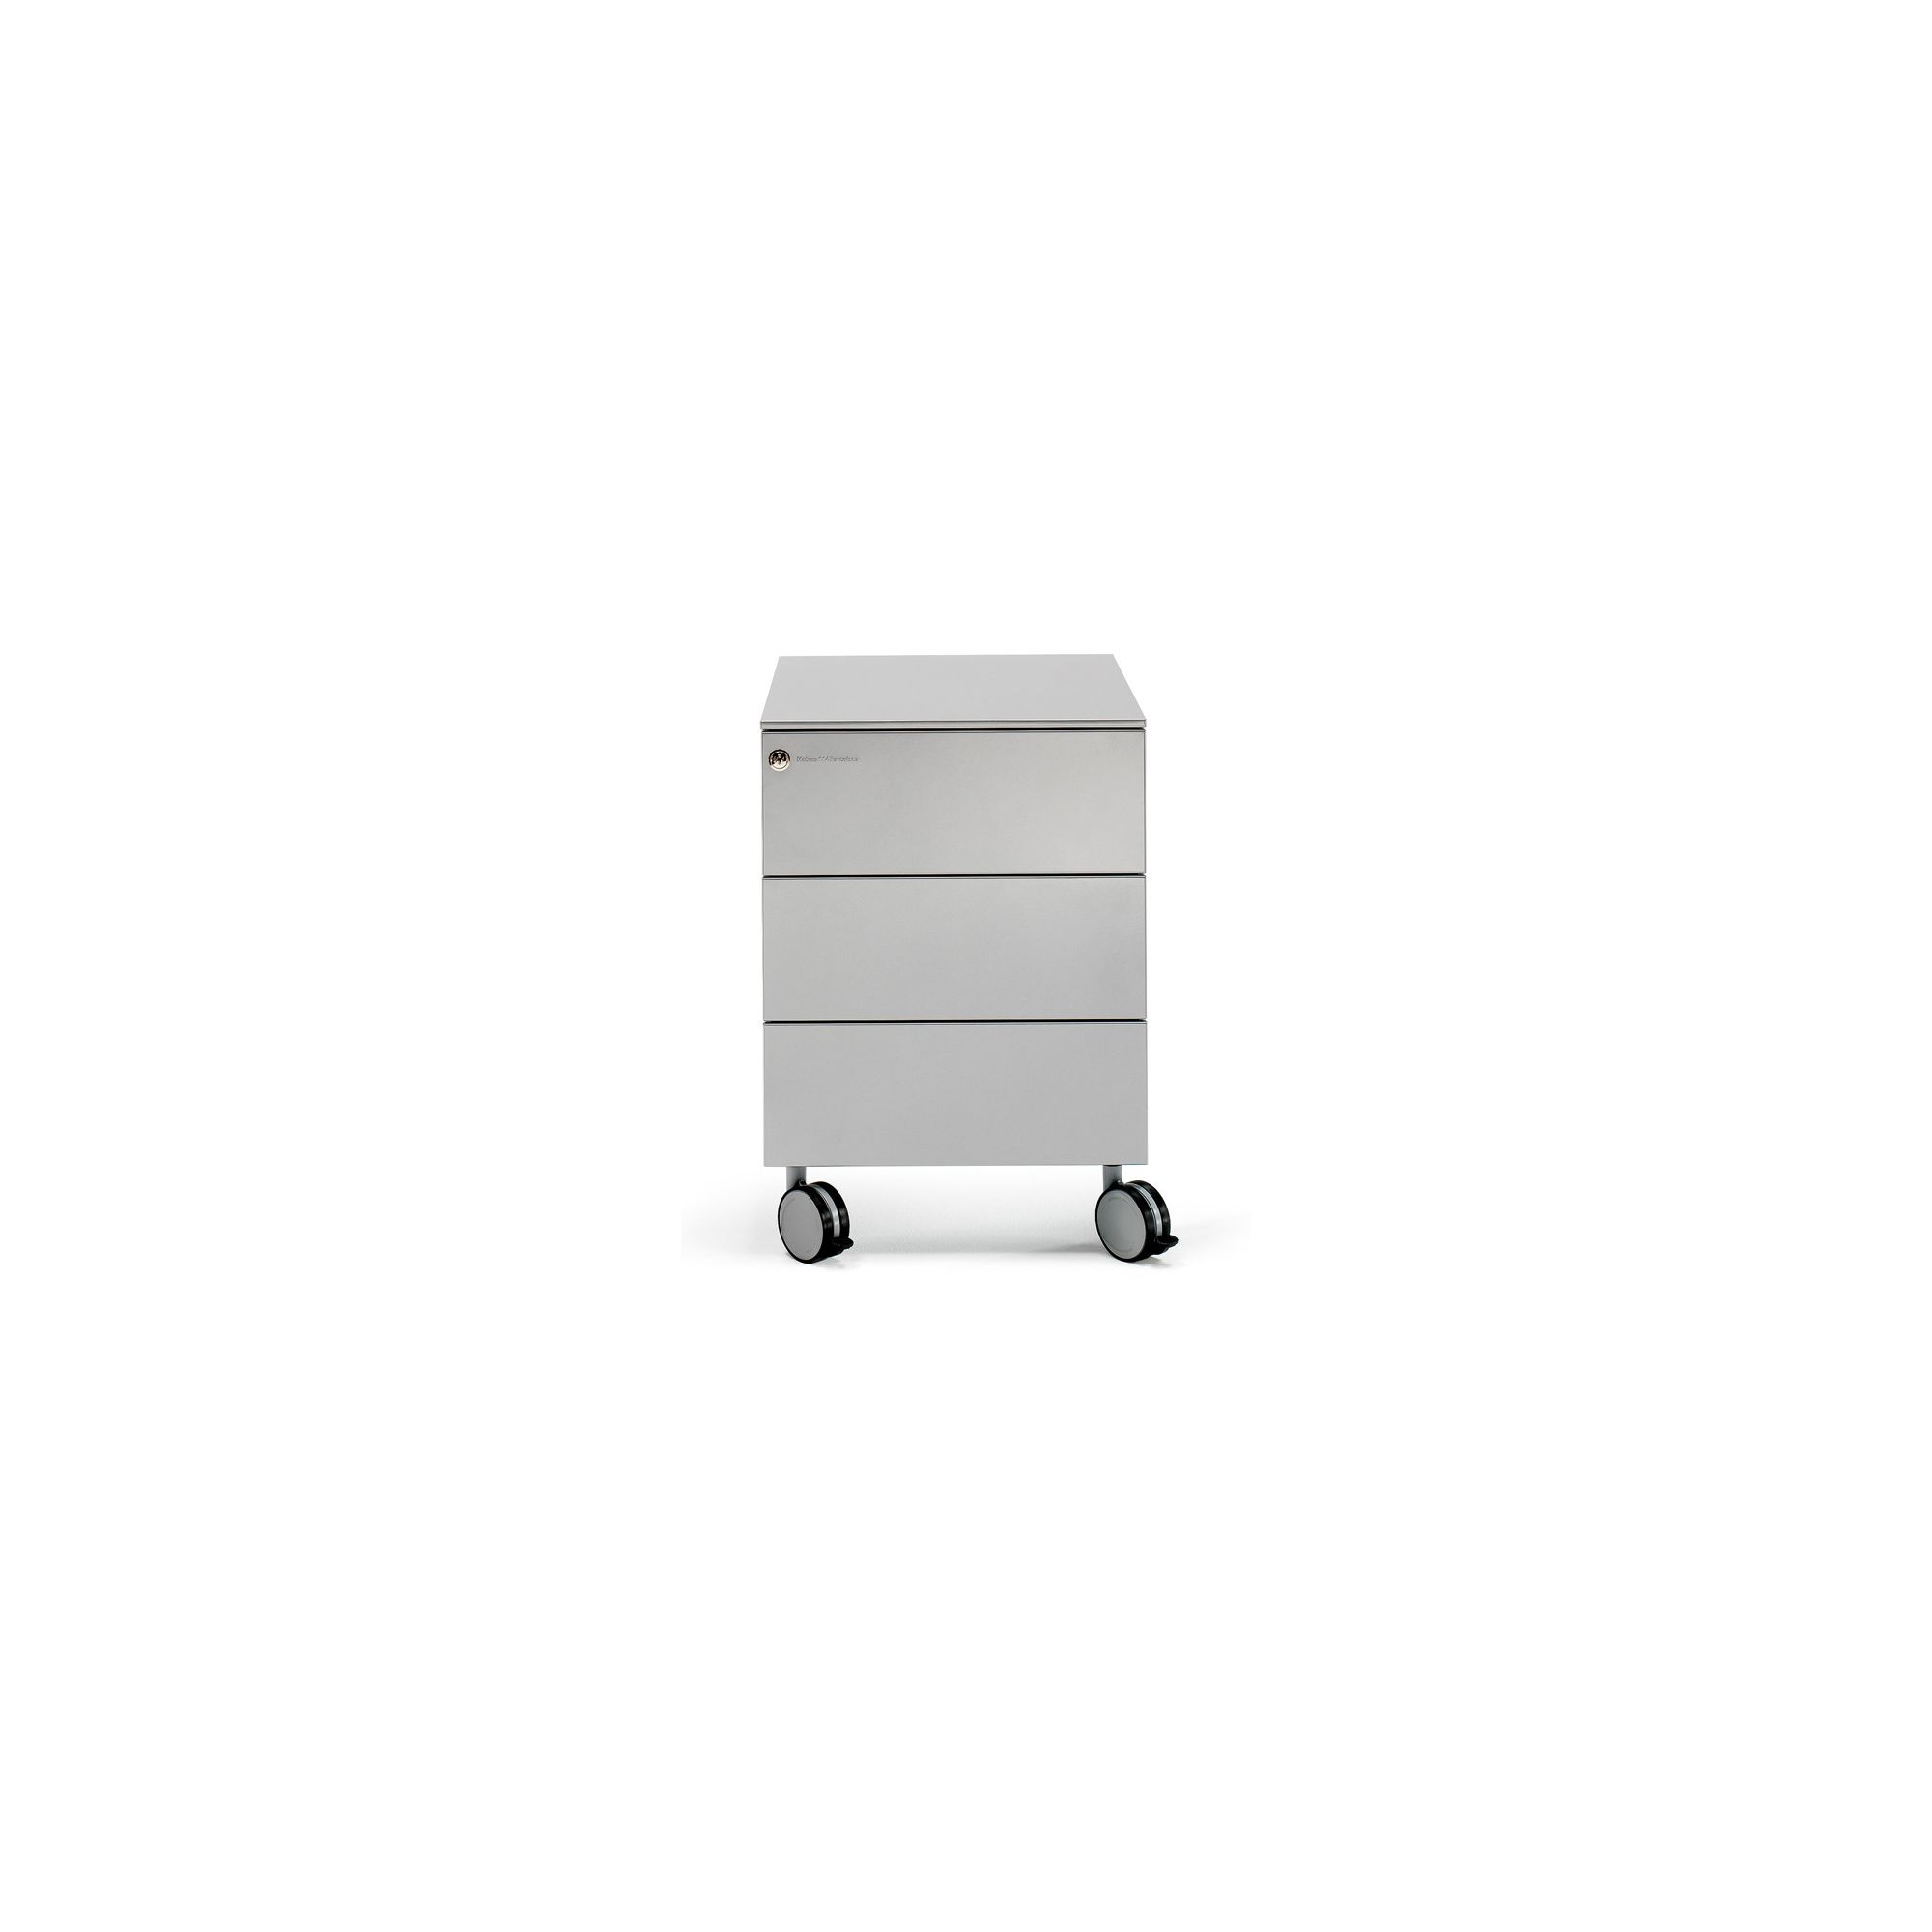 Mobles 114 Pey Pedestal with 3 Drawers - Grey at Tesco Direct